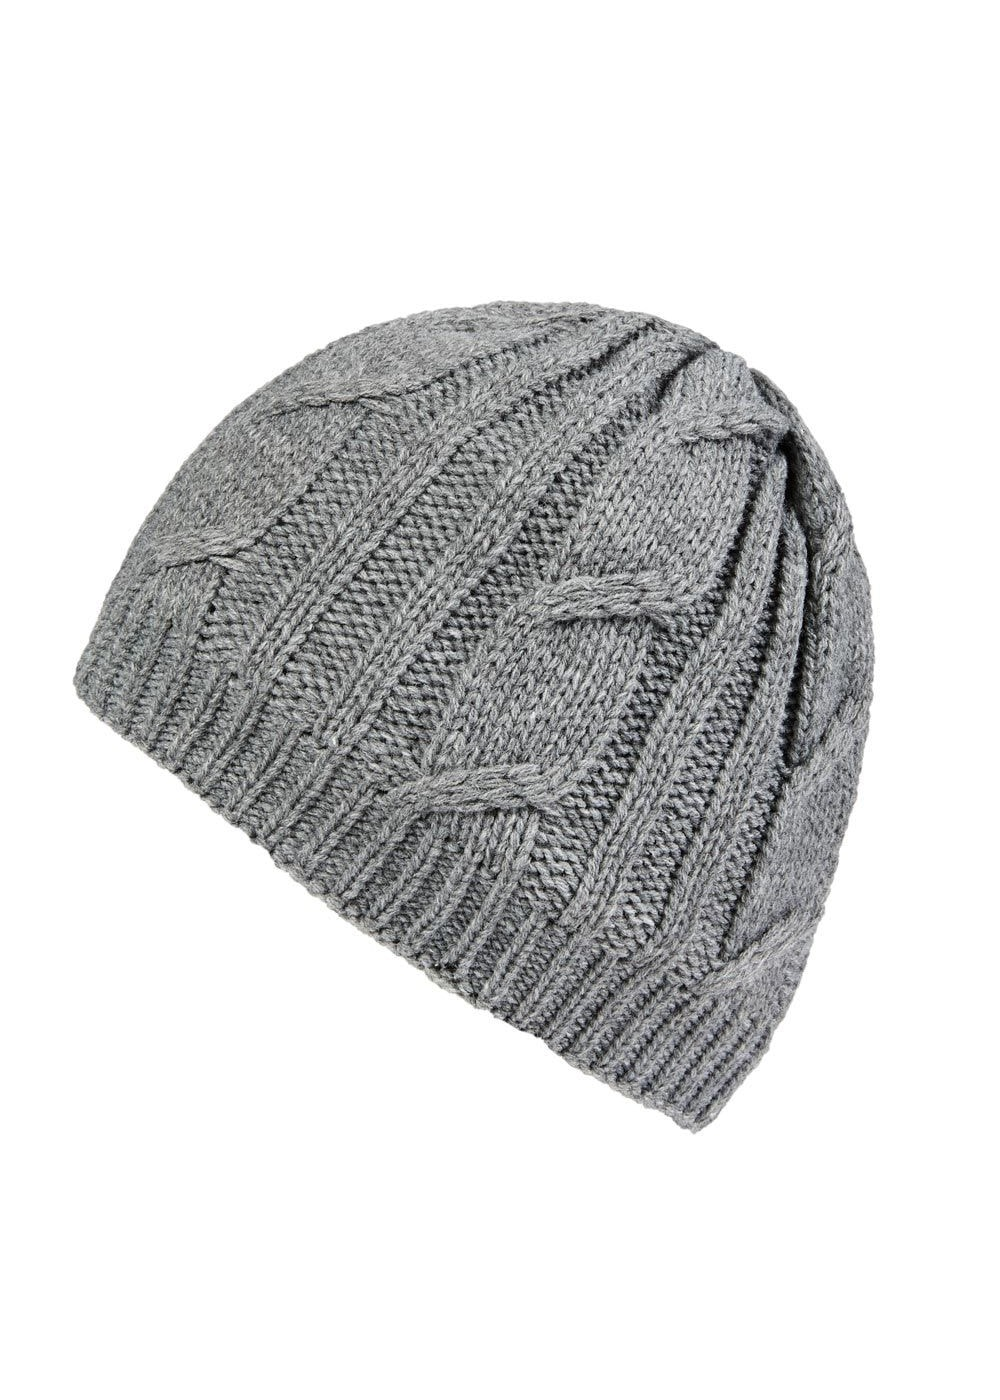 SealSkinz Waterproof Cable Knit Hat - Ladies from A Hume UK 578ff624281c